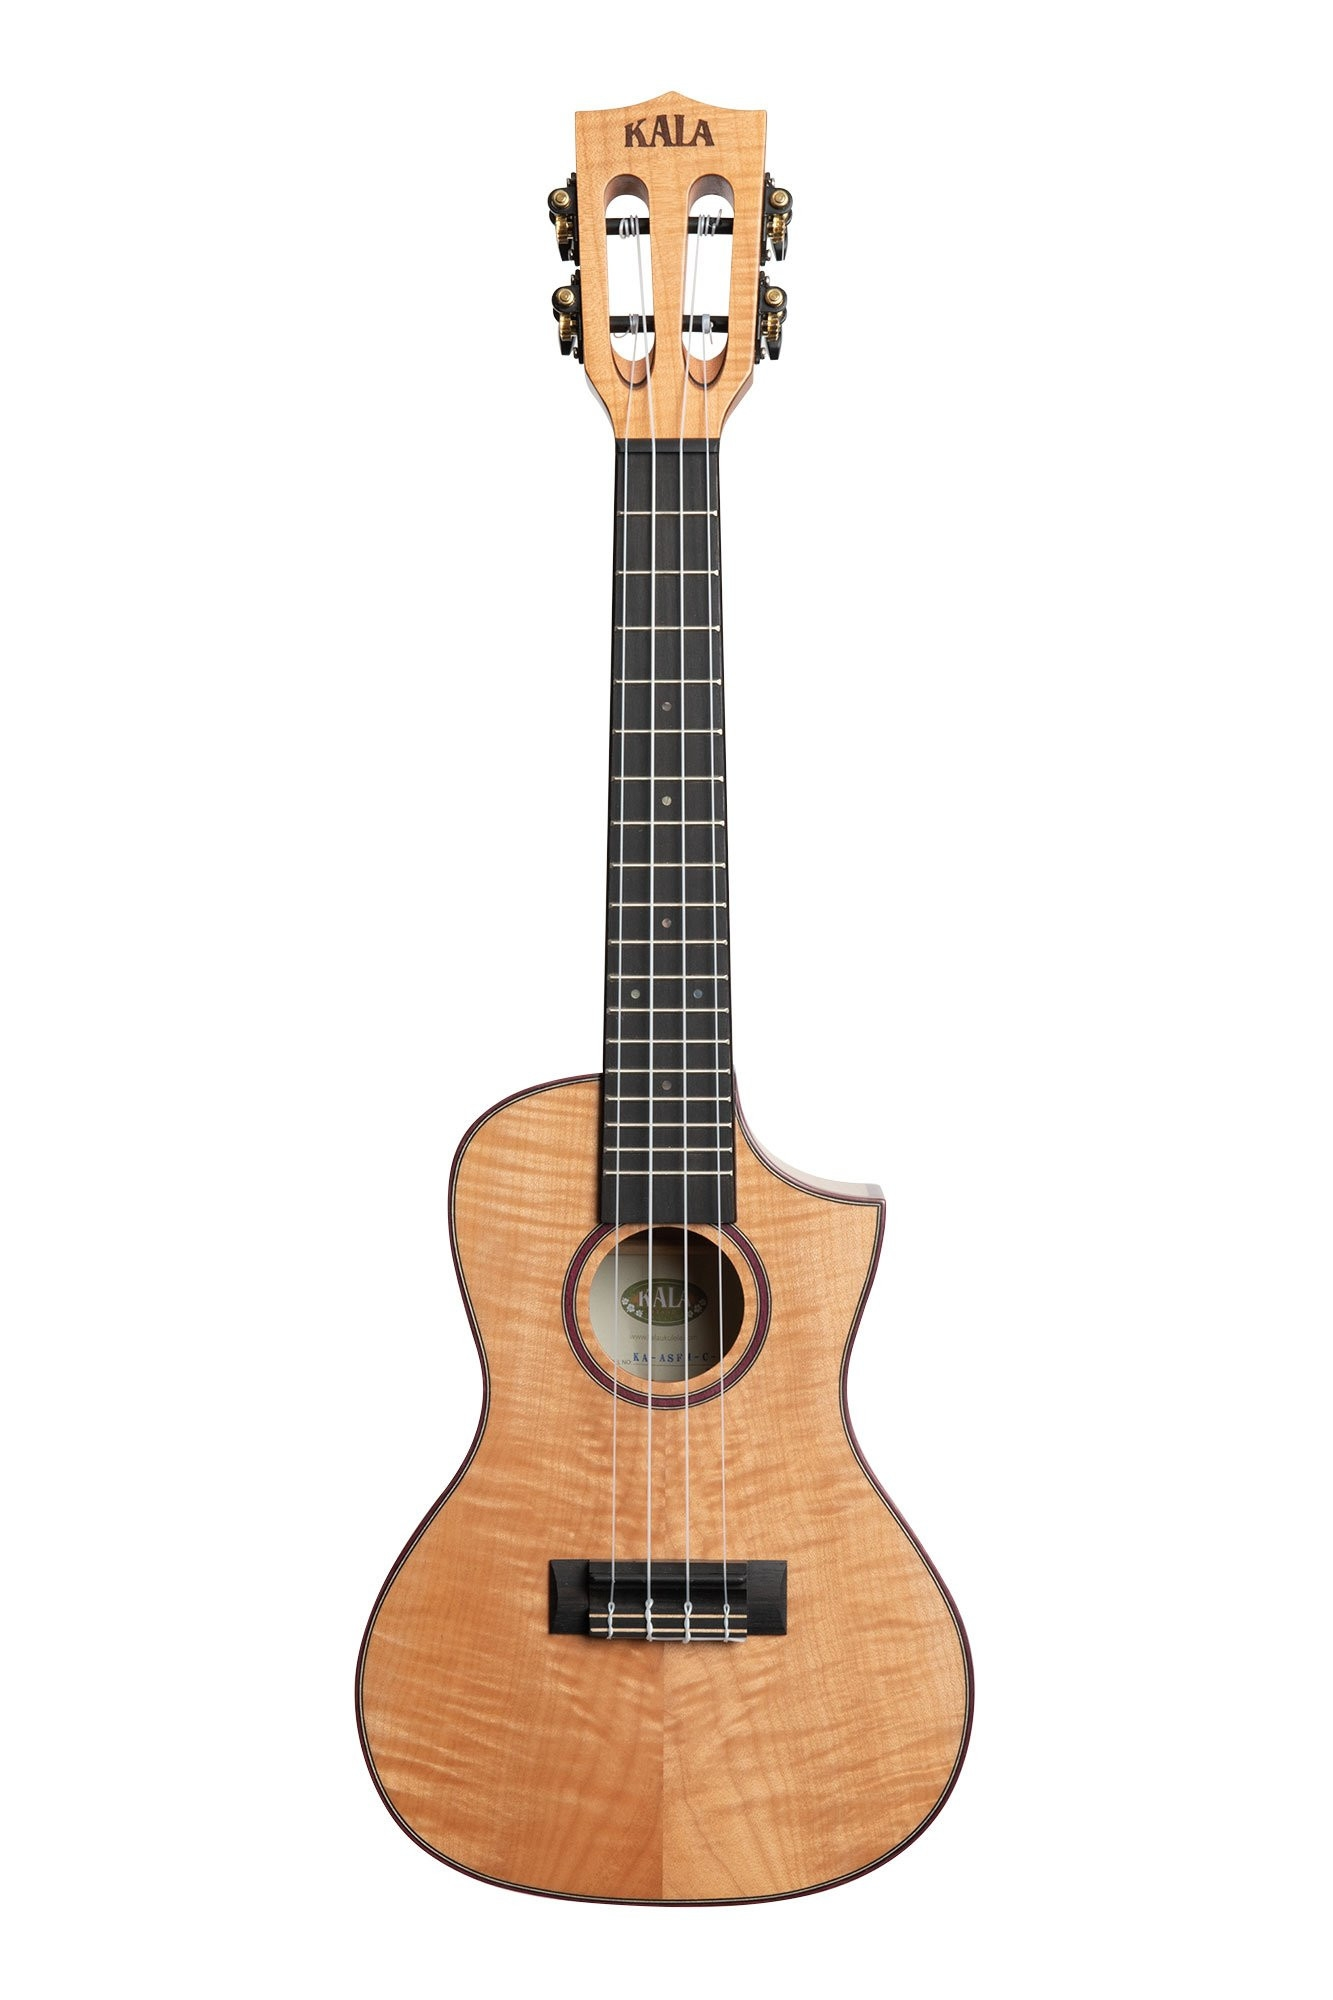 Kala Solid Flame Maple Concert Ukulele, with Cutaway and Case